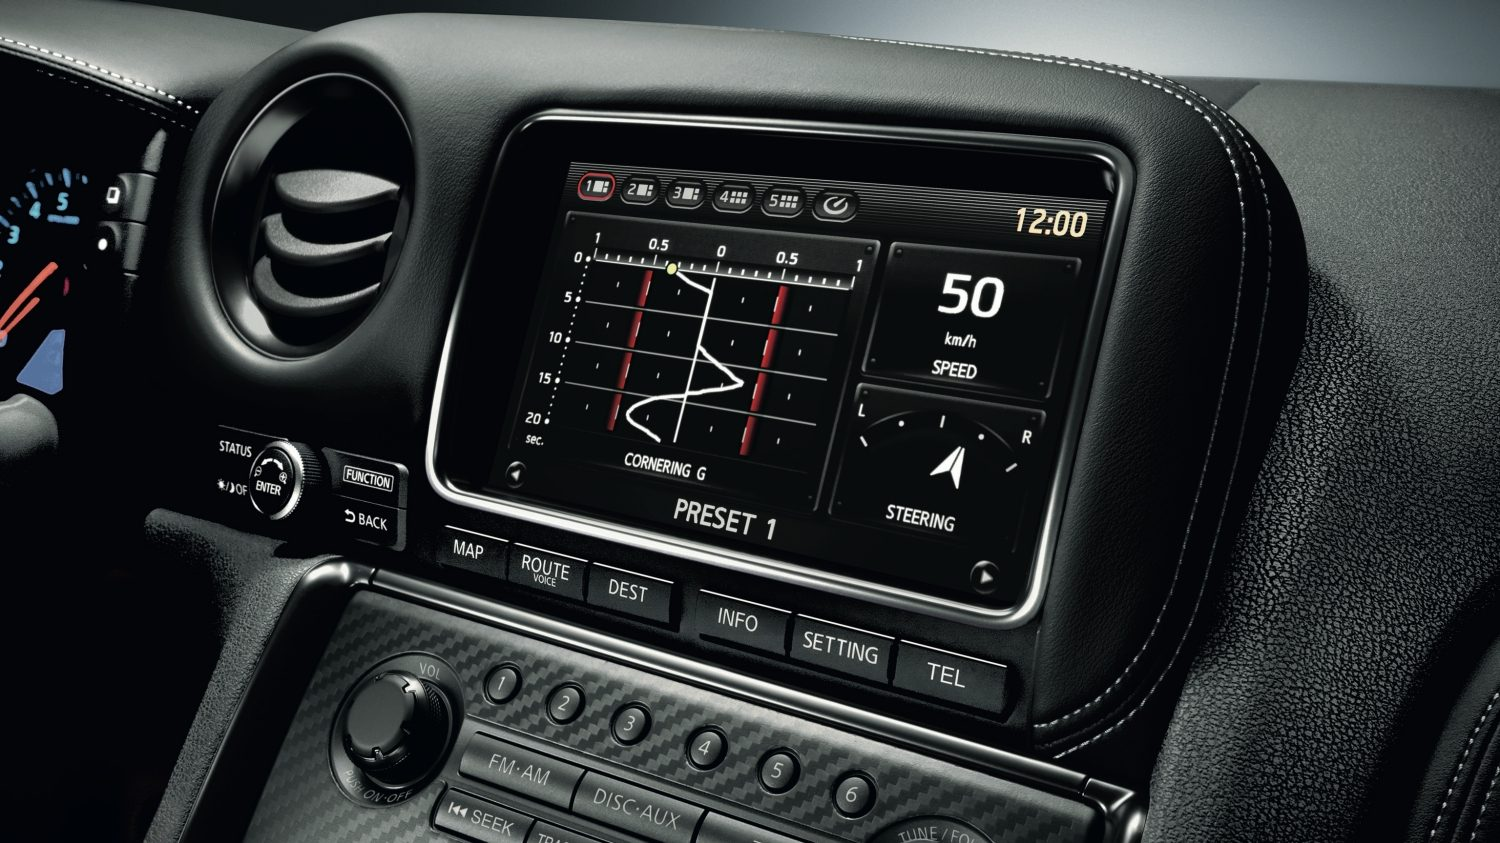 Nissan GT-R NISMO - Crystal-clear multi-function display